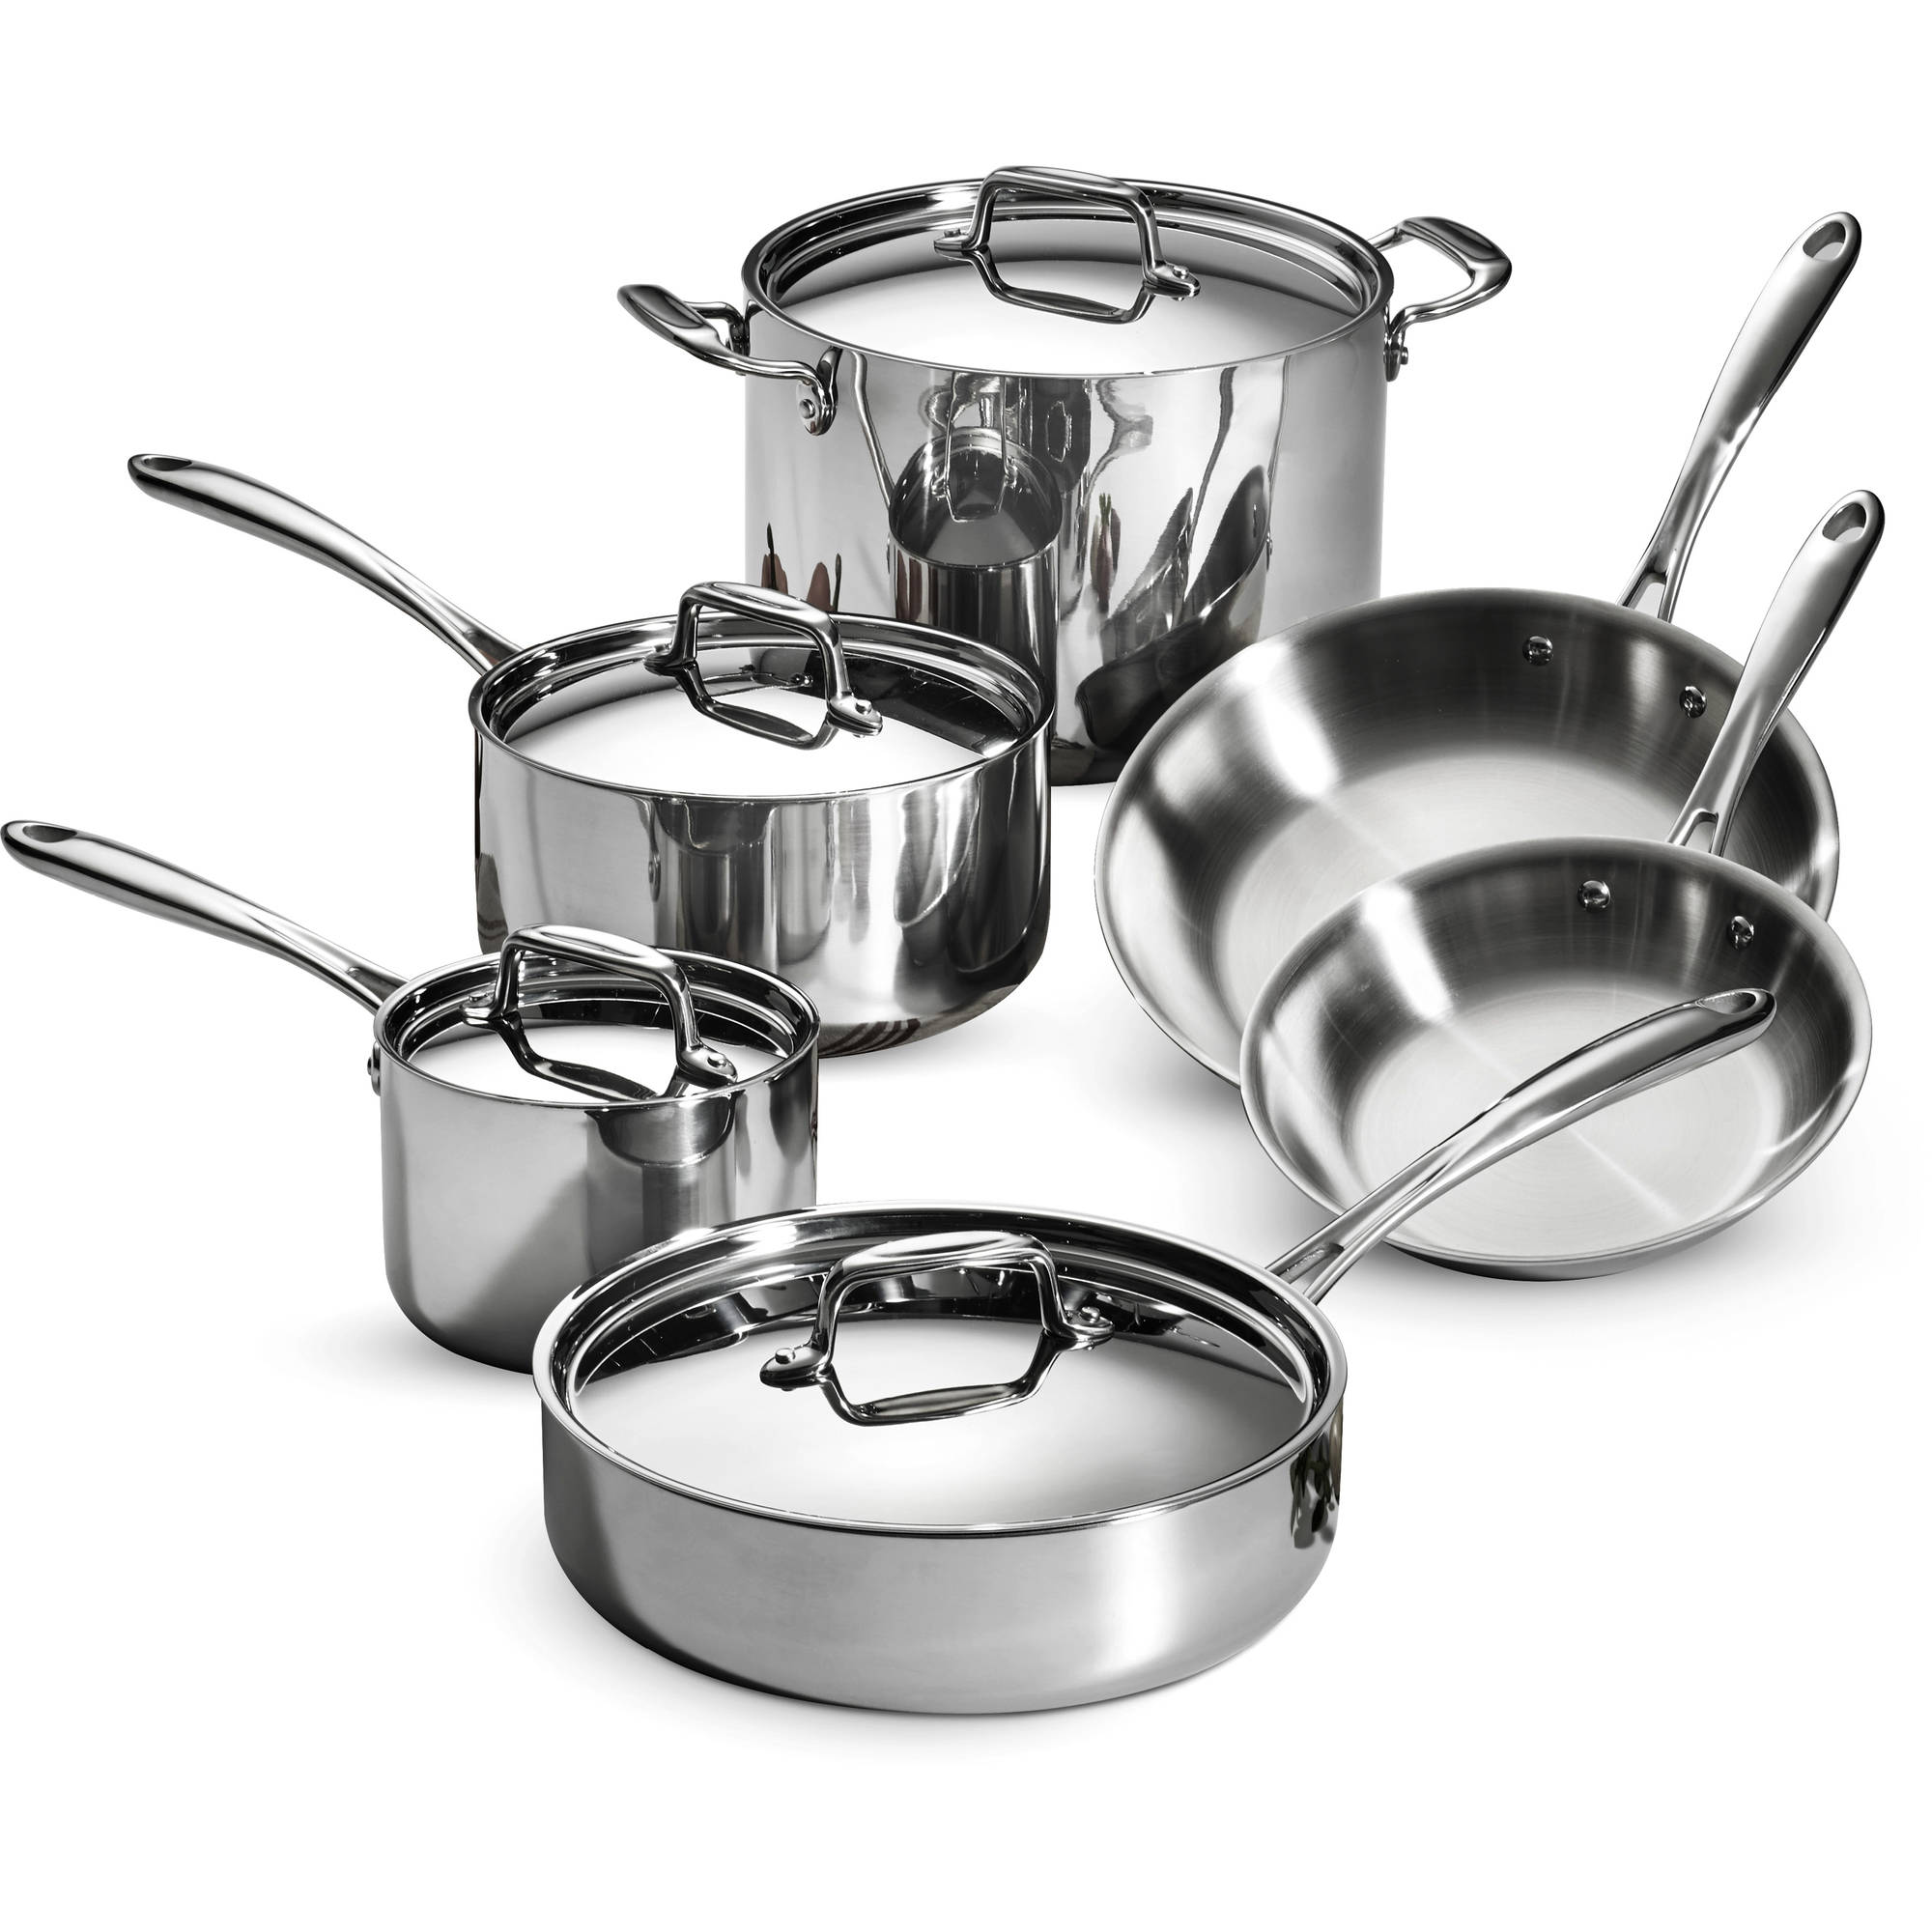 Tramontina 10-Piece Tri-Ply Clad Cookware Set, Stainless Steel ...